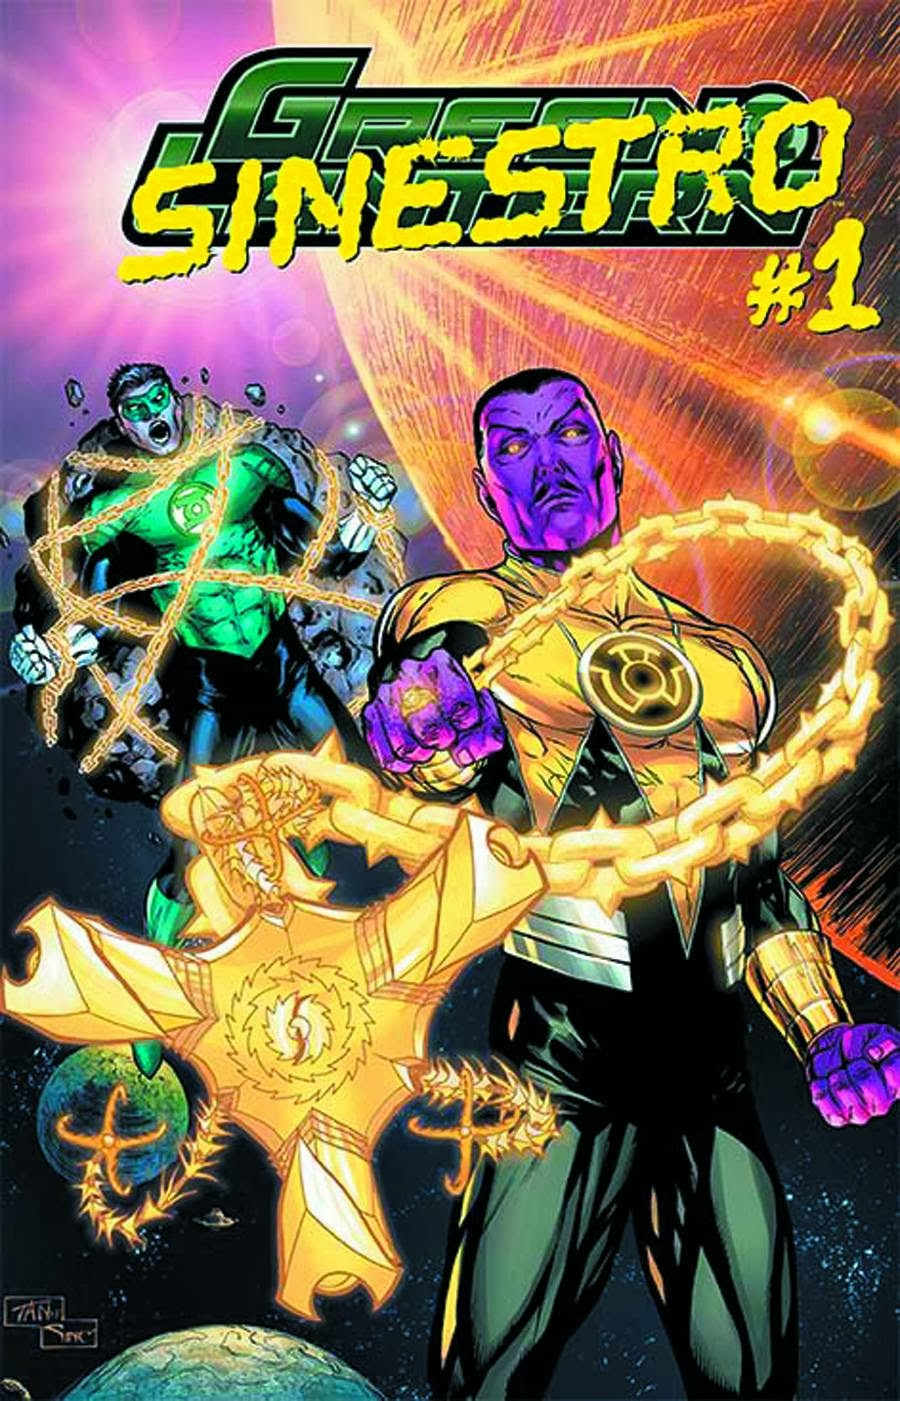 Sinestro's origin takes the stage in the final Green Lantern Villains Month comic.